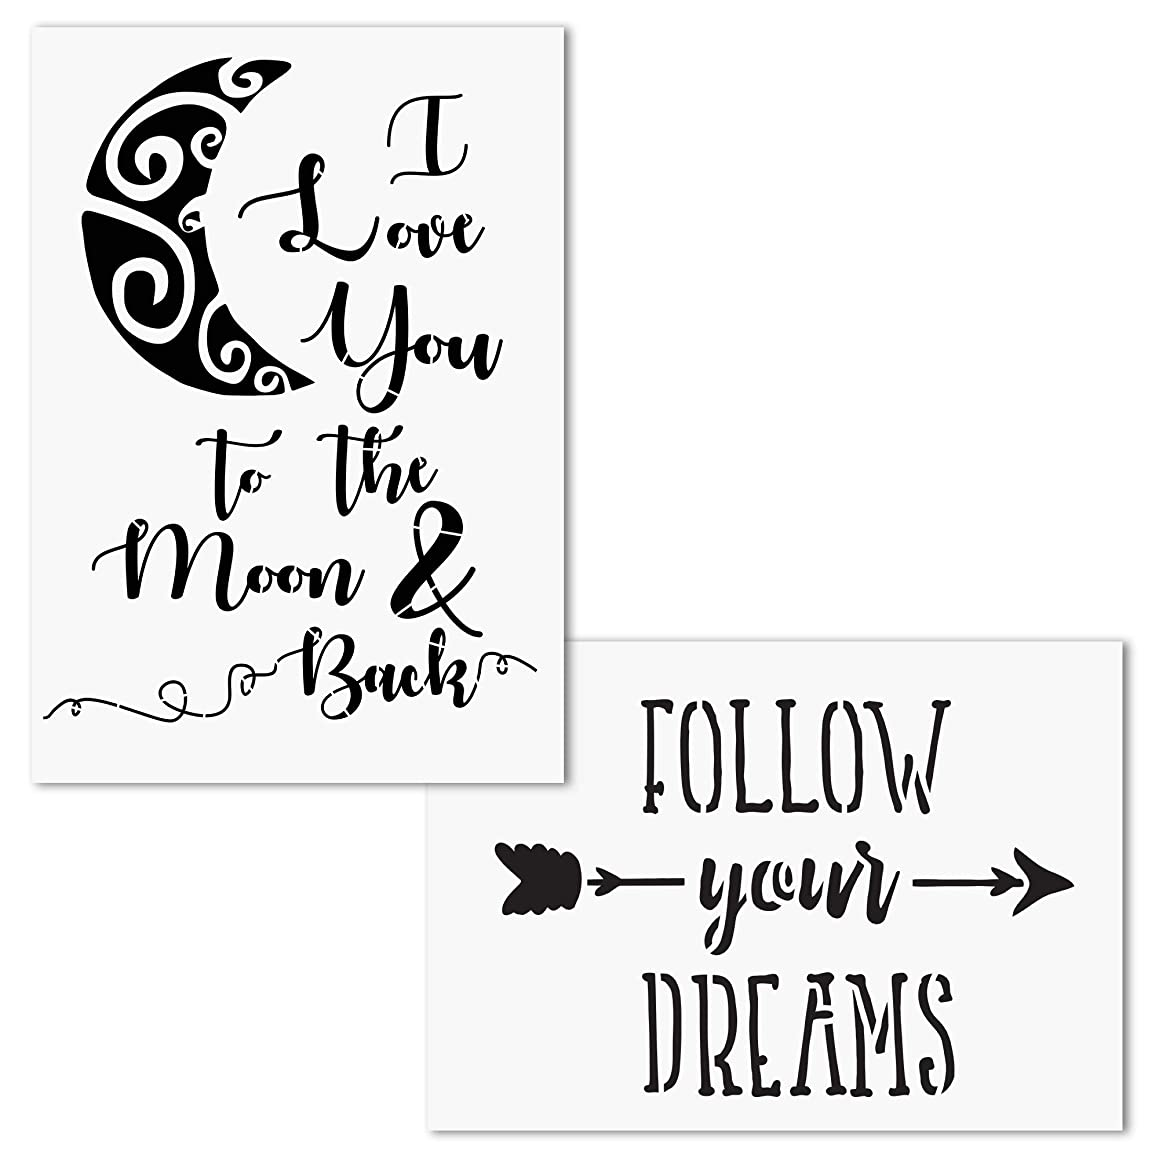 AZDIY Reusable Stencil Set- I Love You to The Moon and Back, Follow Your Dreams Stencils - Word Stencils for Painting on Wood– Quote Painting Stencil - for Home Décor & DIY Projects